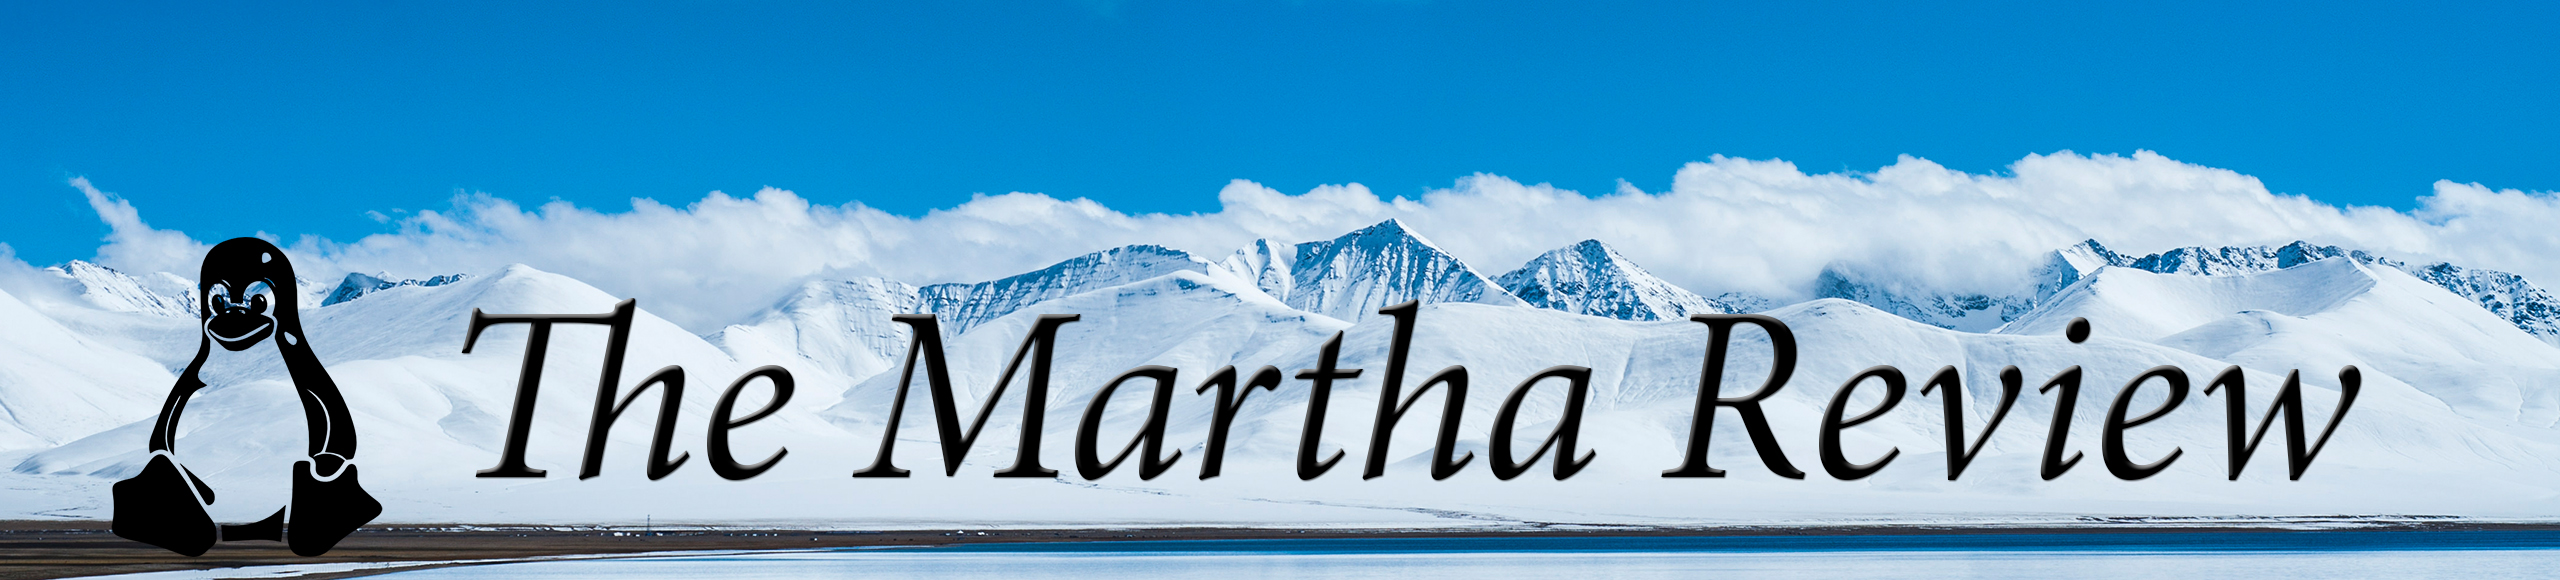 The Martha Review